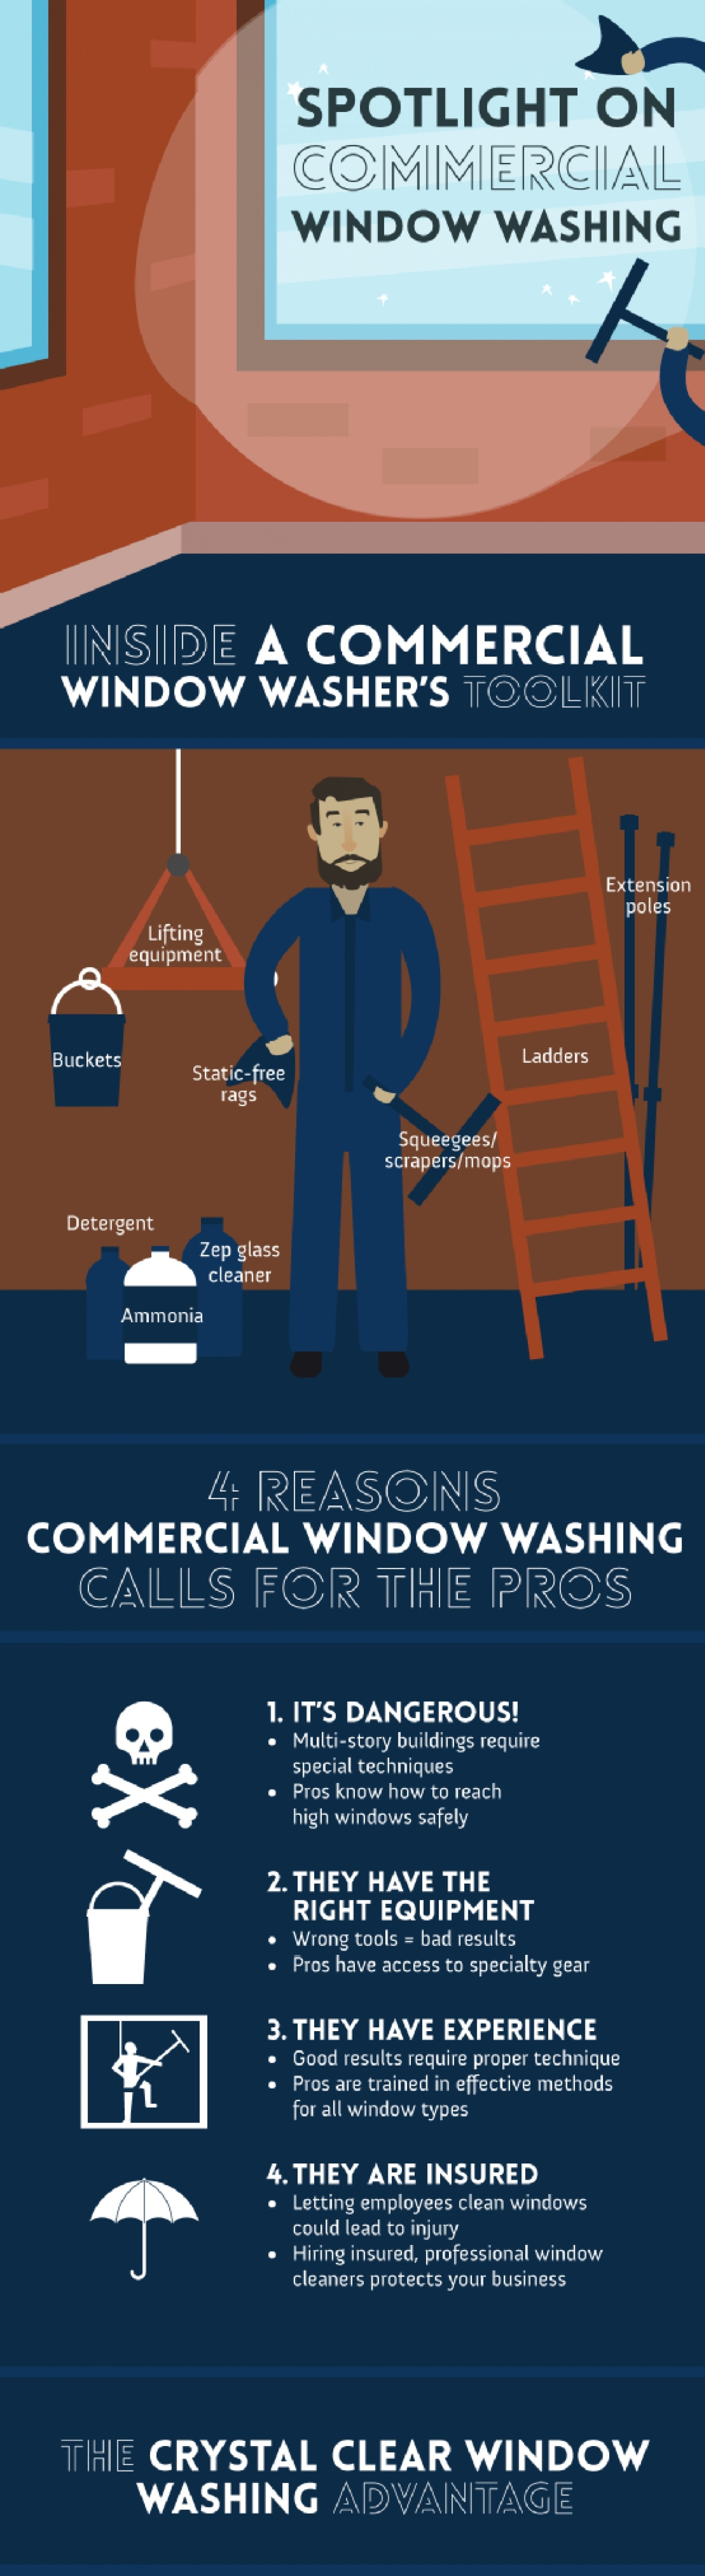 window-cleaning-services-infographic.jpg